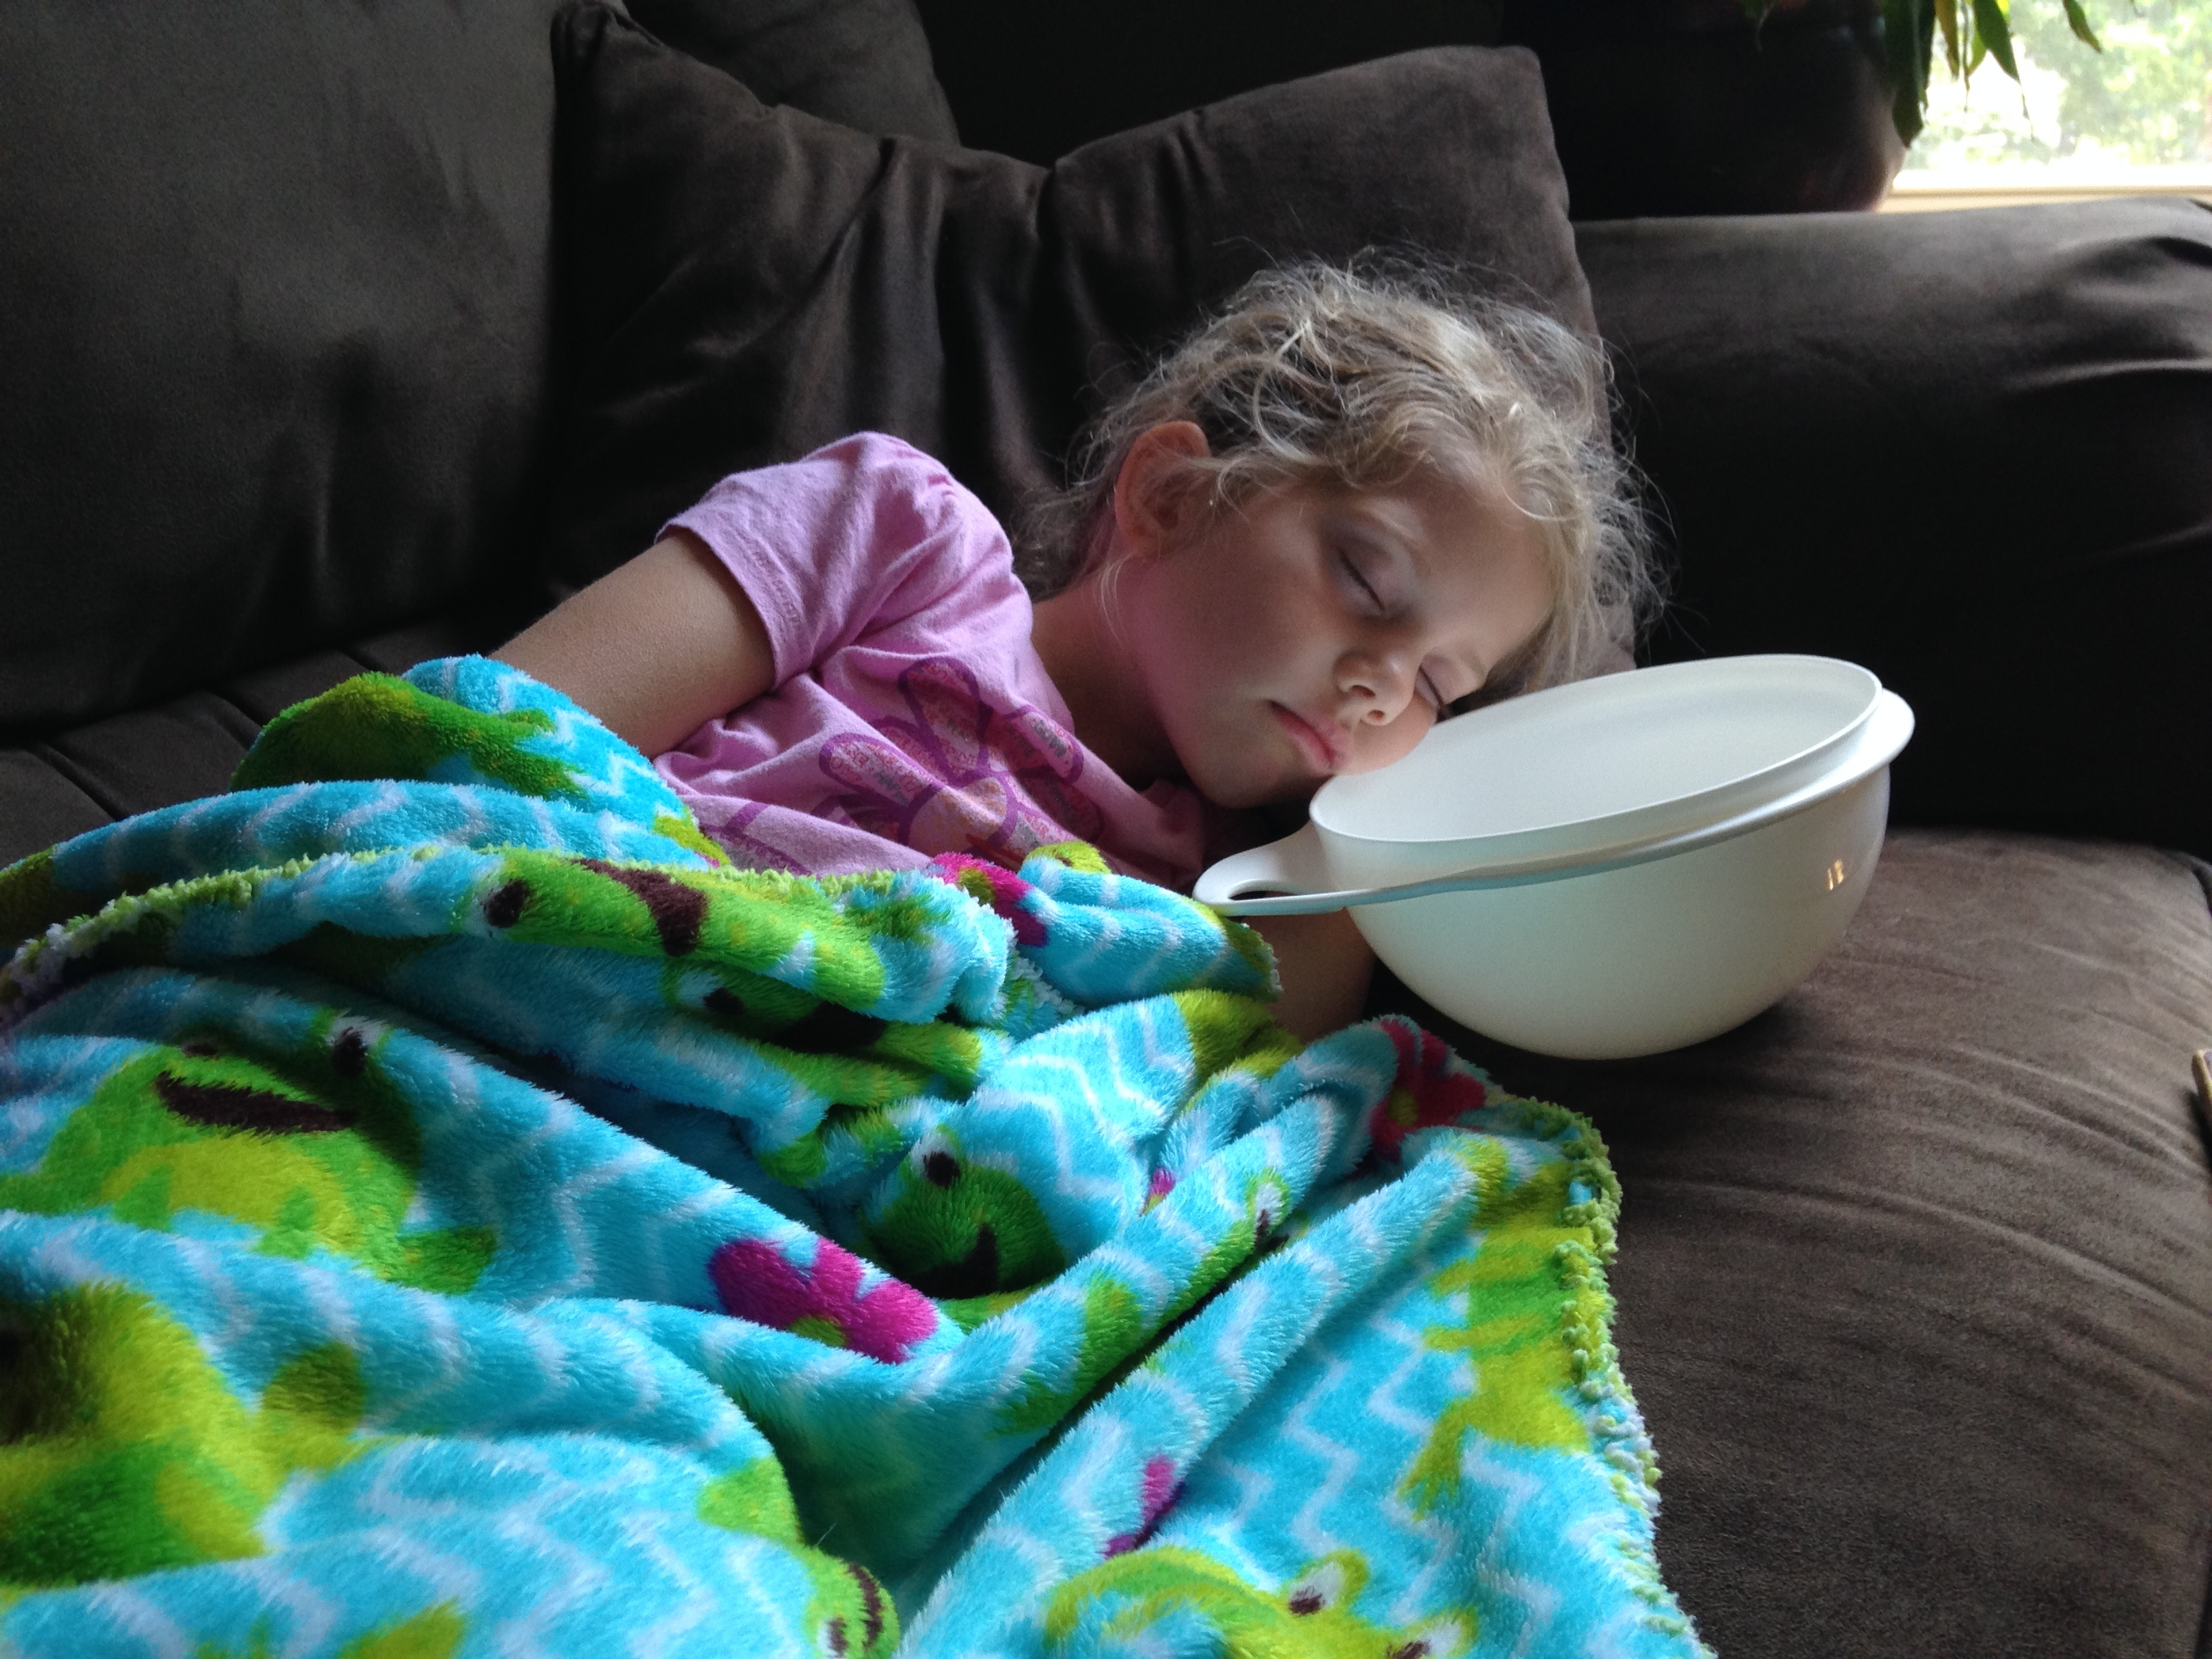 Poor Kaylin spent all day next to her bowl.